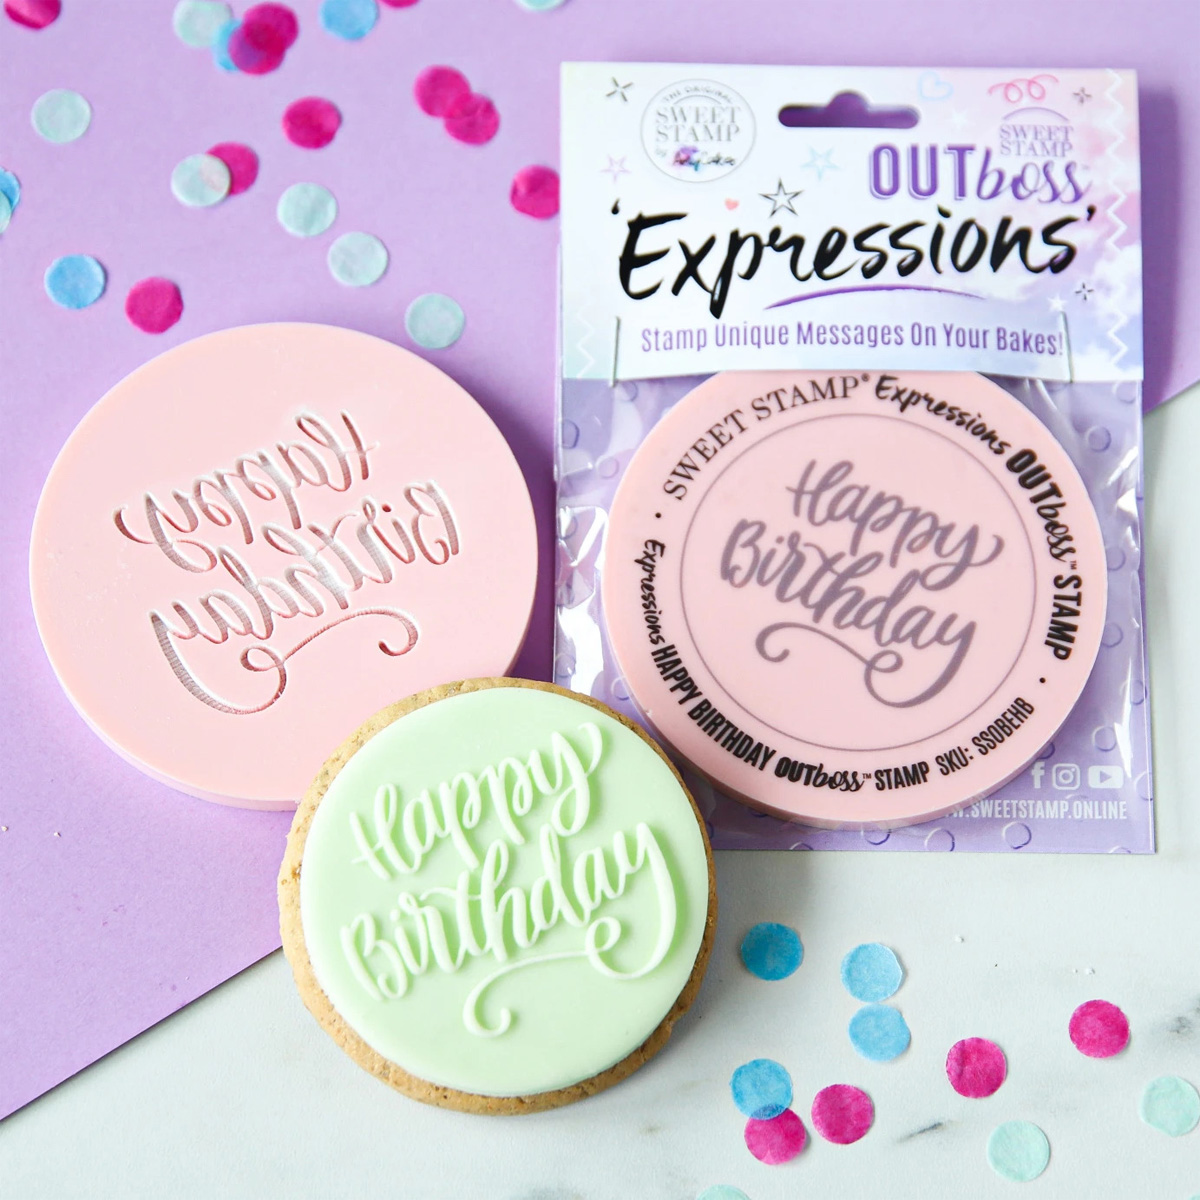 Sweet Stamp OUTboss Expressions - Elegant Happy Birthday